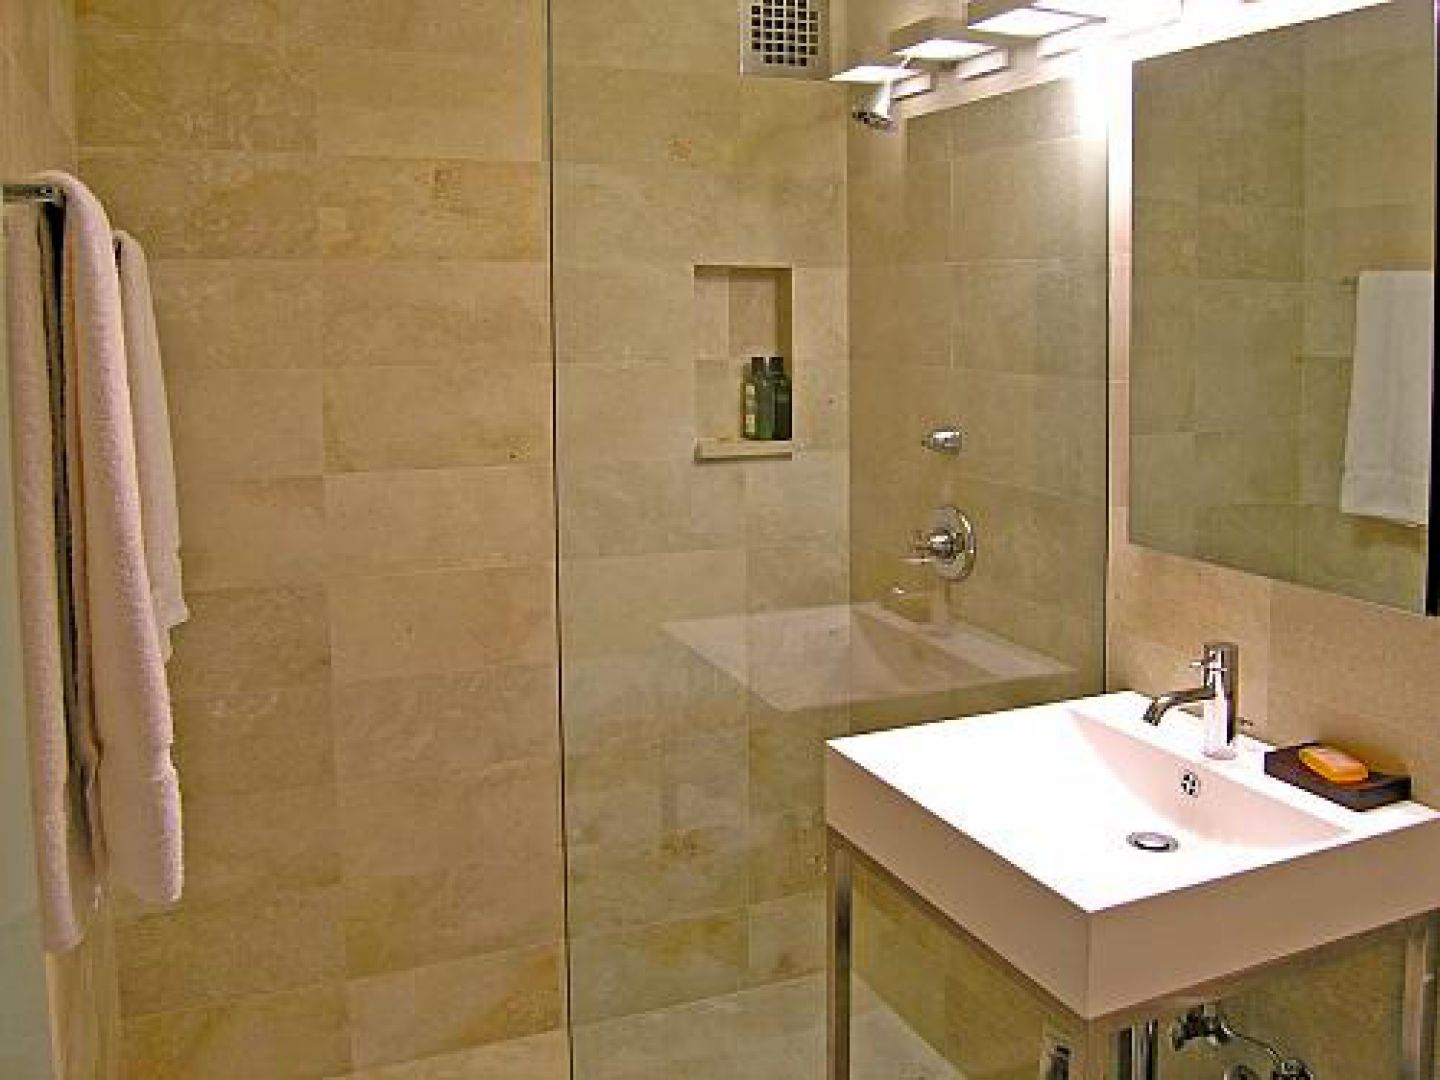 Bathroom Travertine Bathroom Tile Feat Glass Door Shower Room Ideas With  Wall Lamp And White Square Sink Appealing Bathroom From Travertine Bathroom  ...